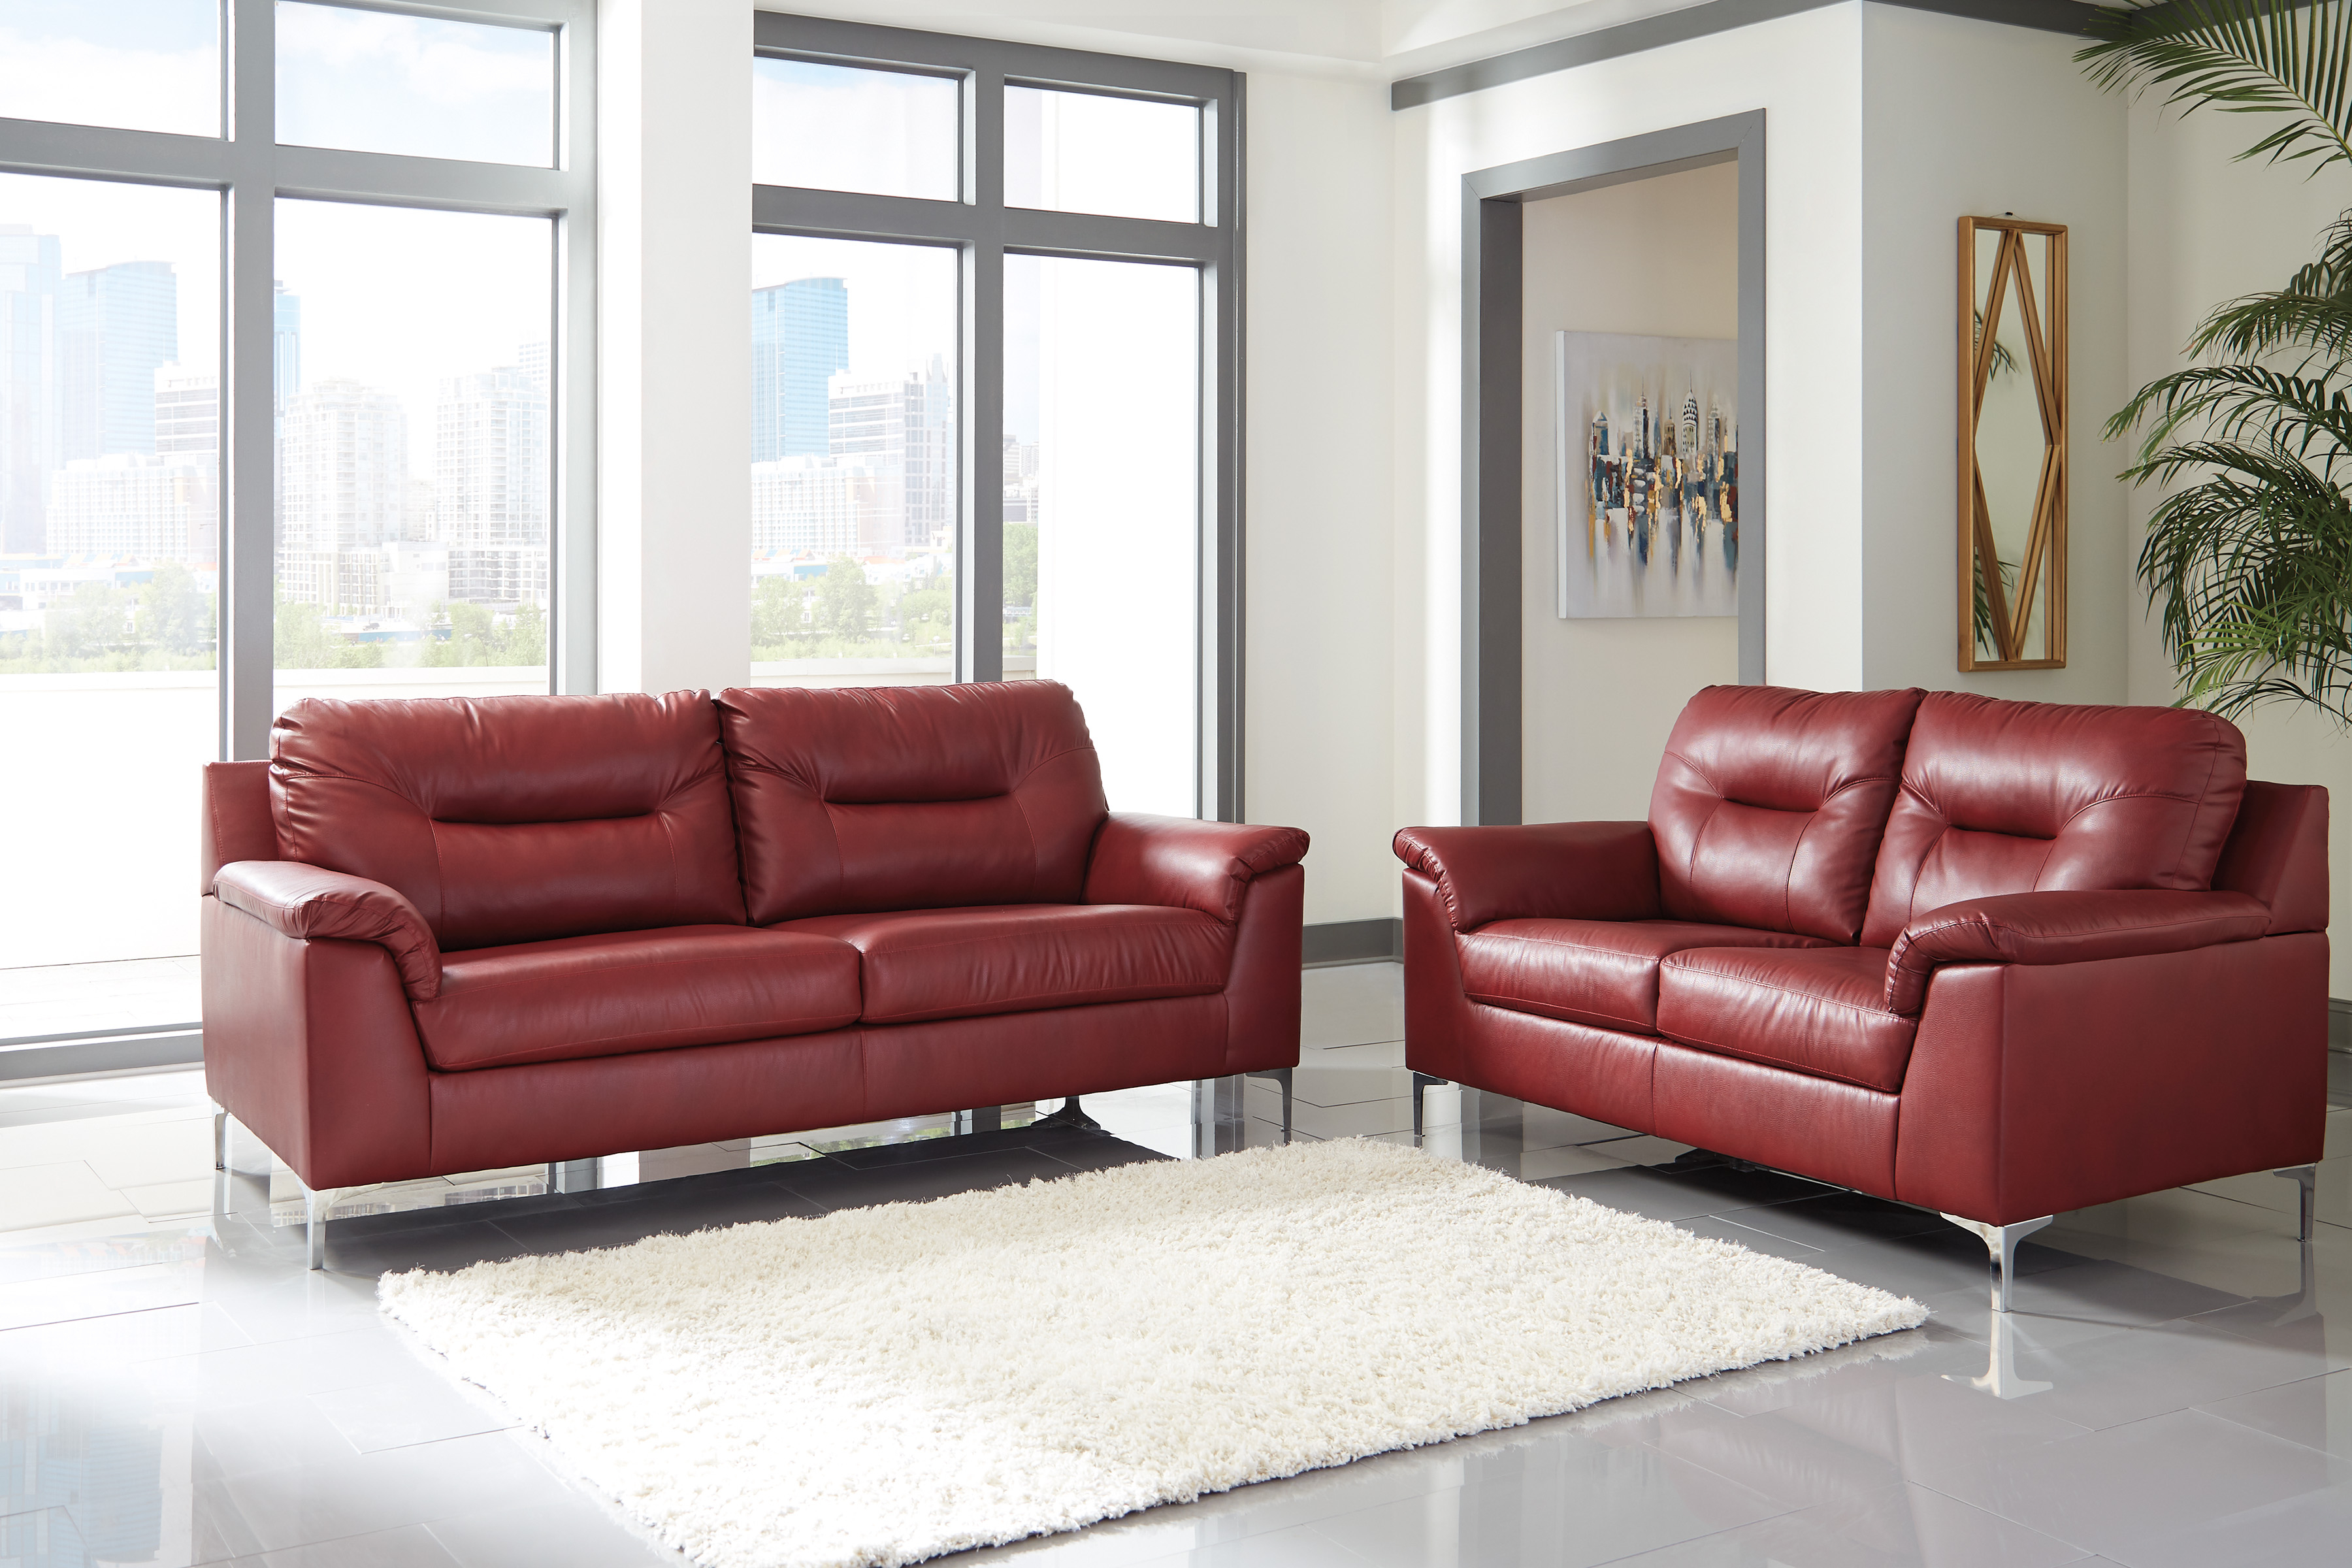 Ashley Tensas 2pc Red Living Room Set Dallas Tx Living Room Set inside 11 Awesome Initiatives of How to Makeover Affordable Living Room Sets